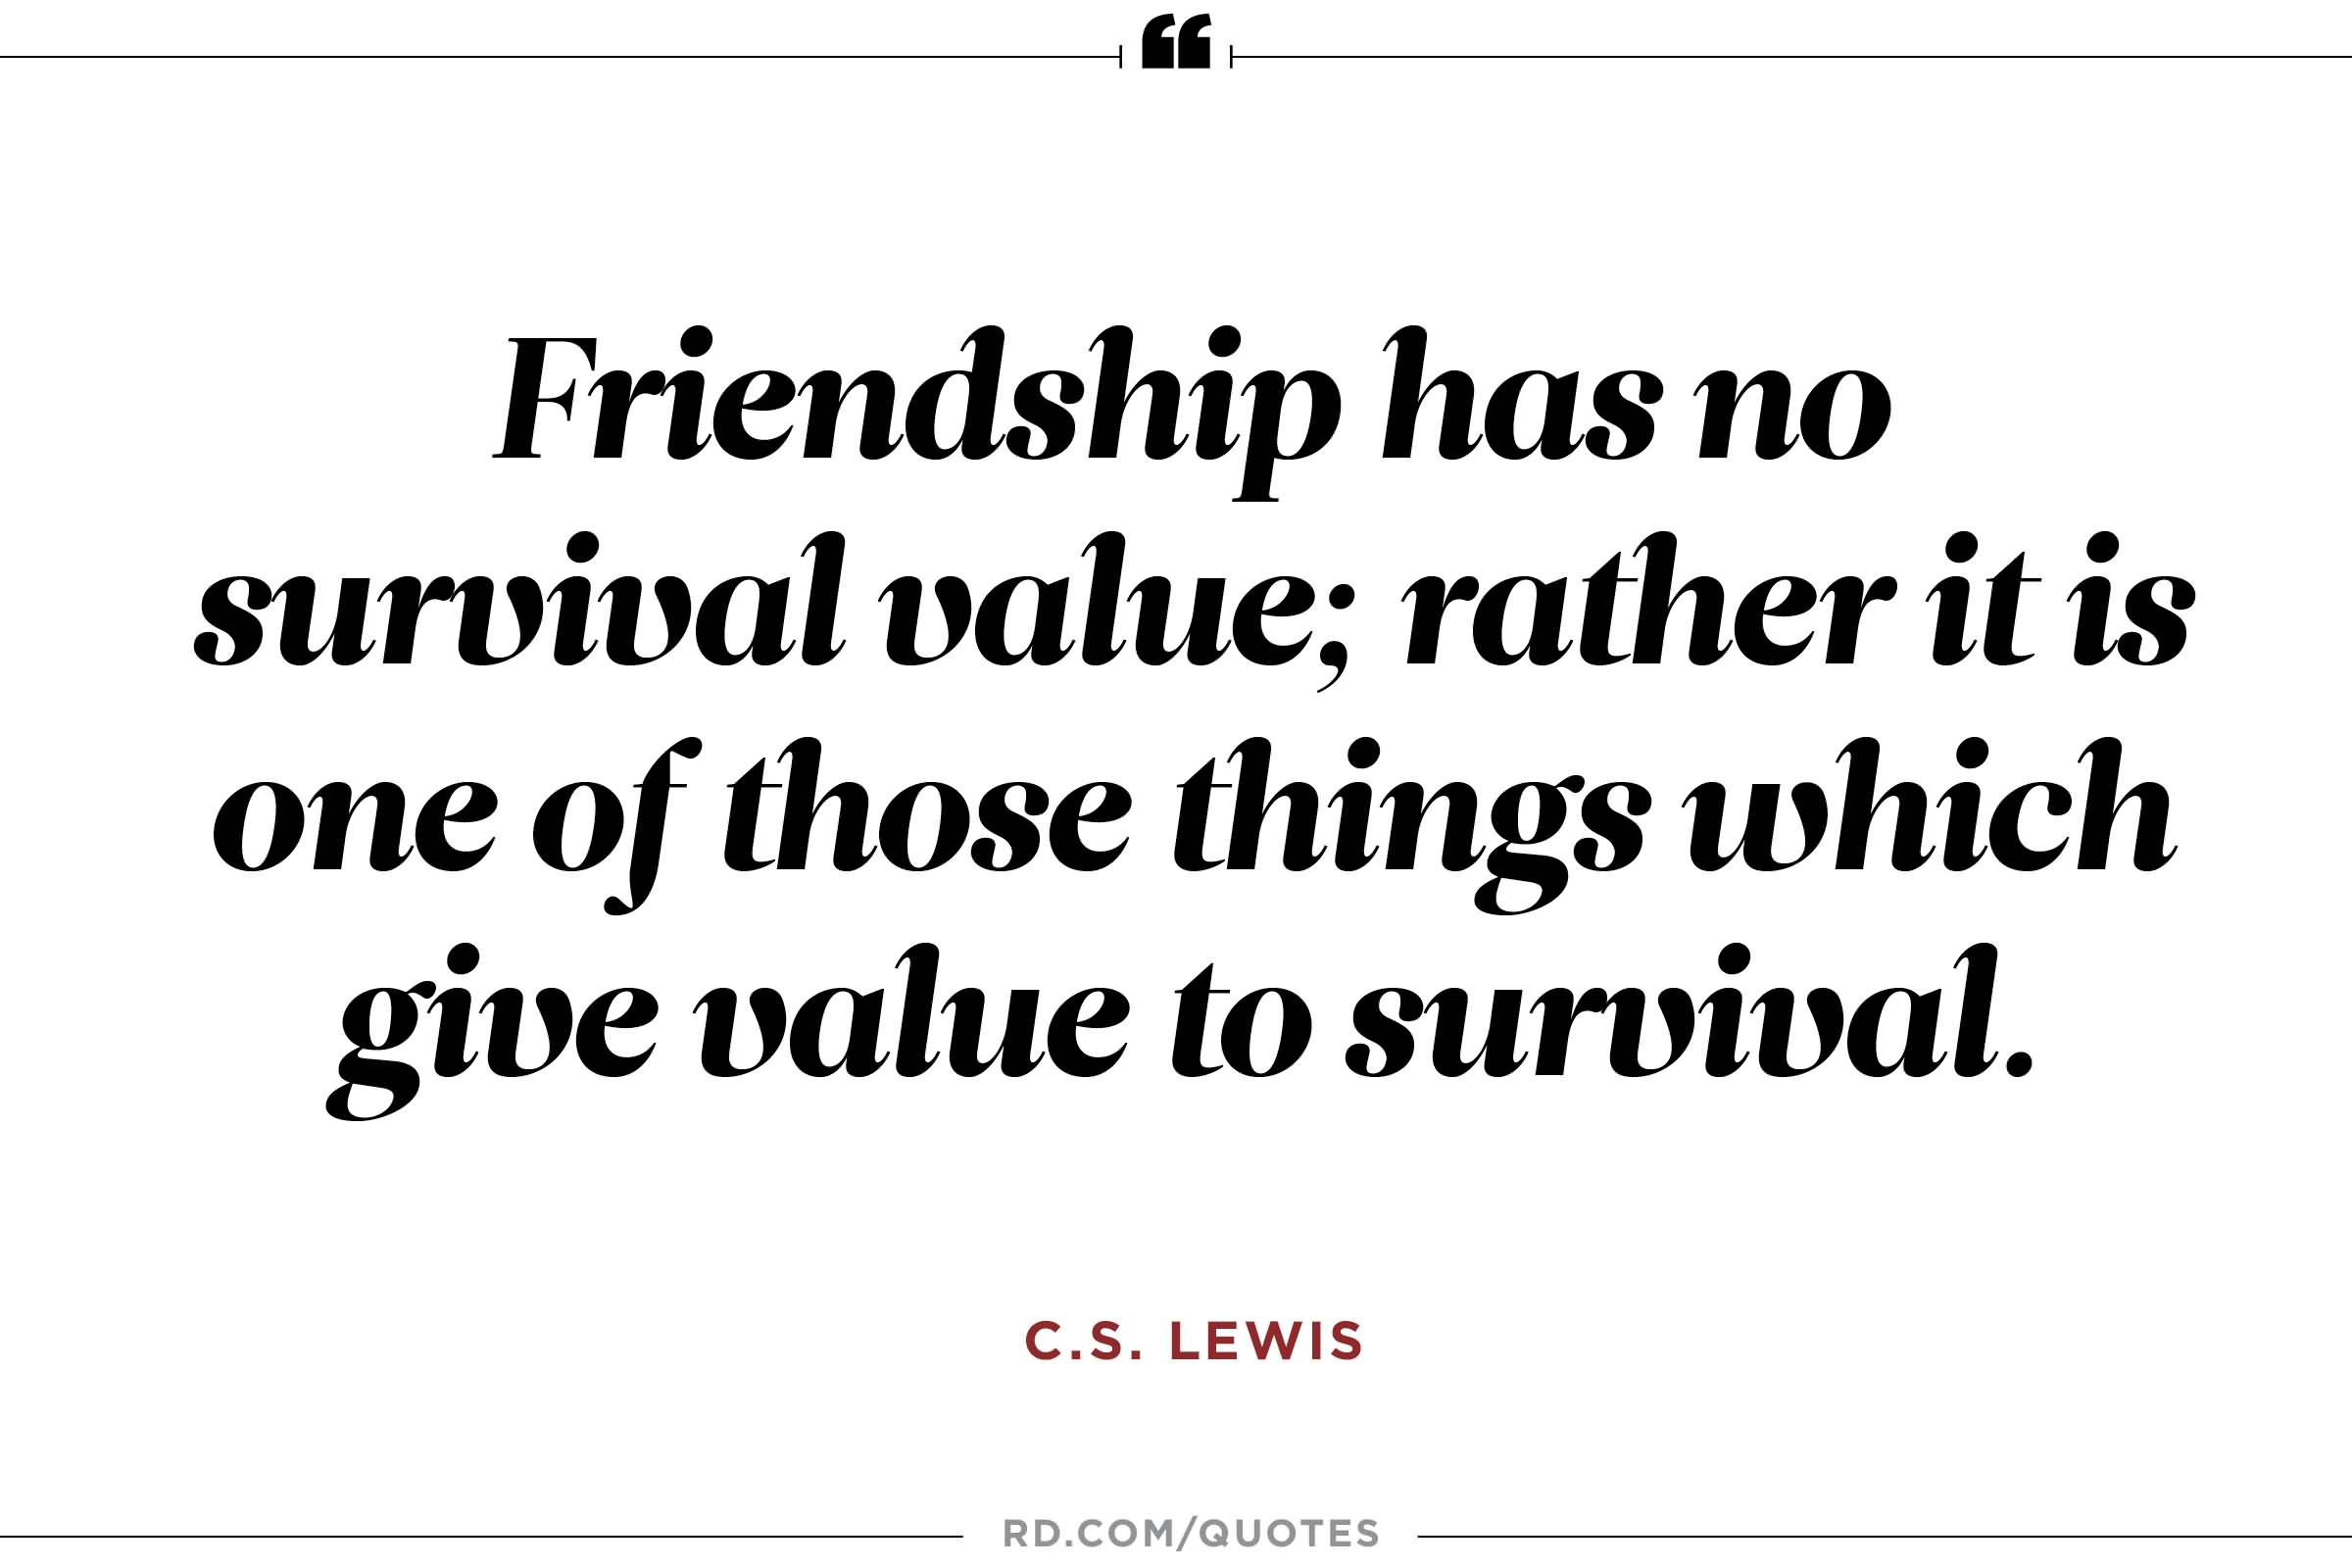 Cs Lewis Quote About Friendship 10